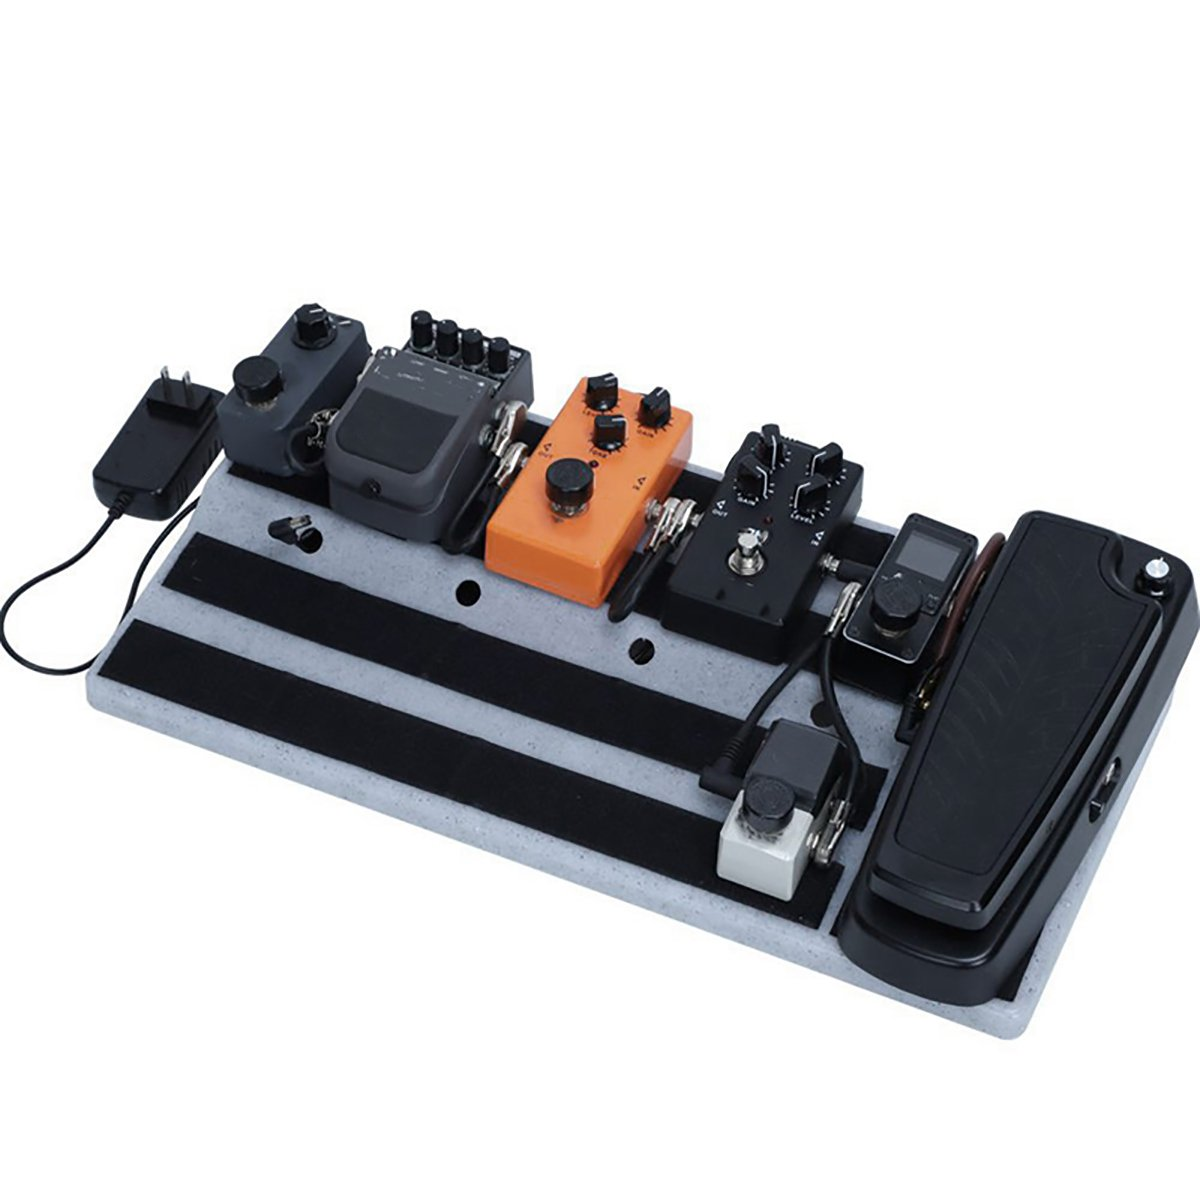 ABS Plastic Electric Guitar Effects Pedal Board with Screwdriver